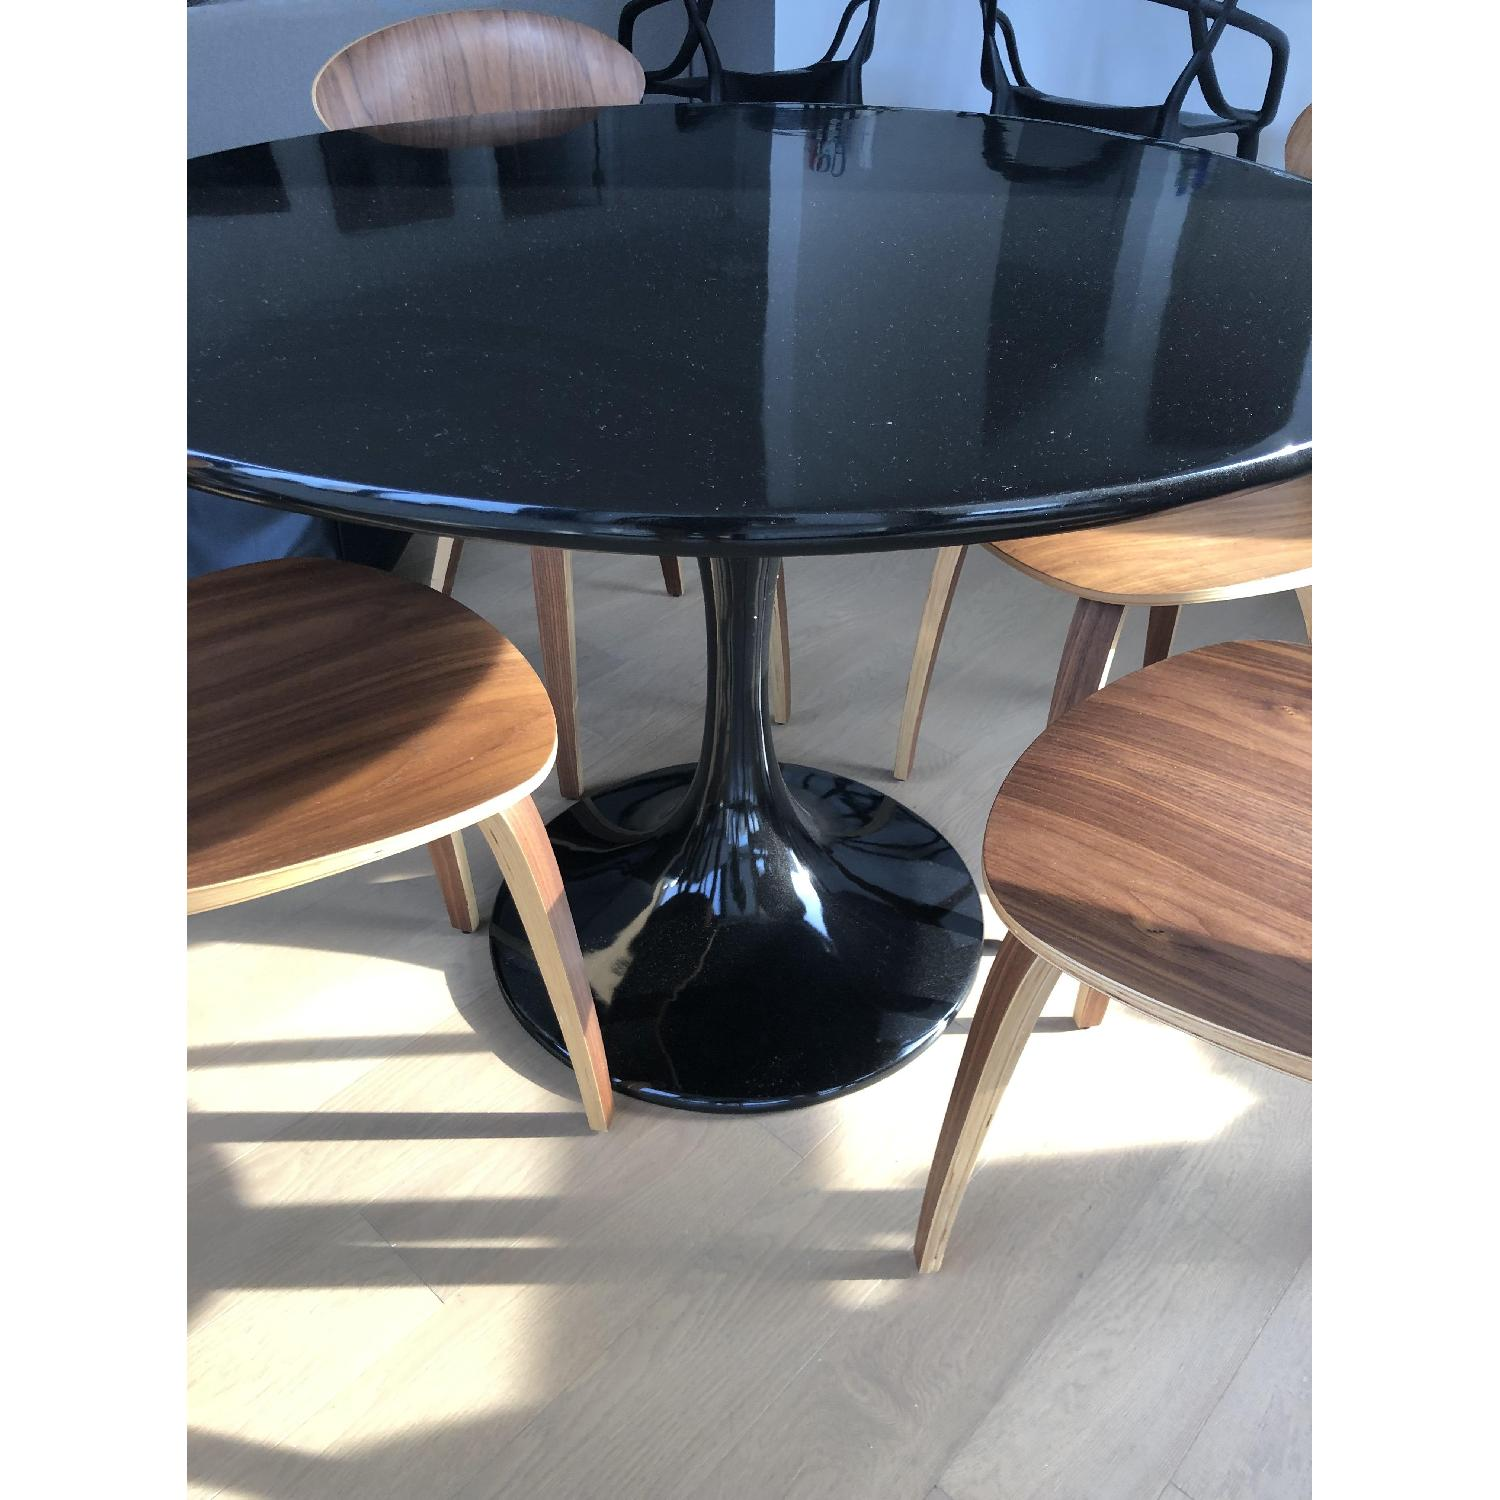 Fine Mod Imports Dining Table - image-6